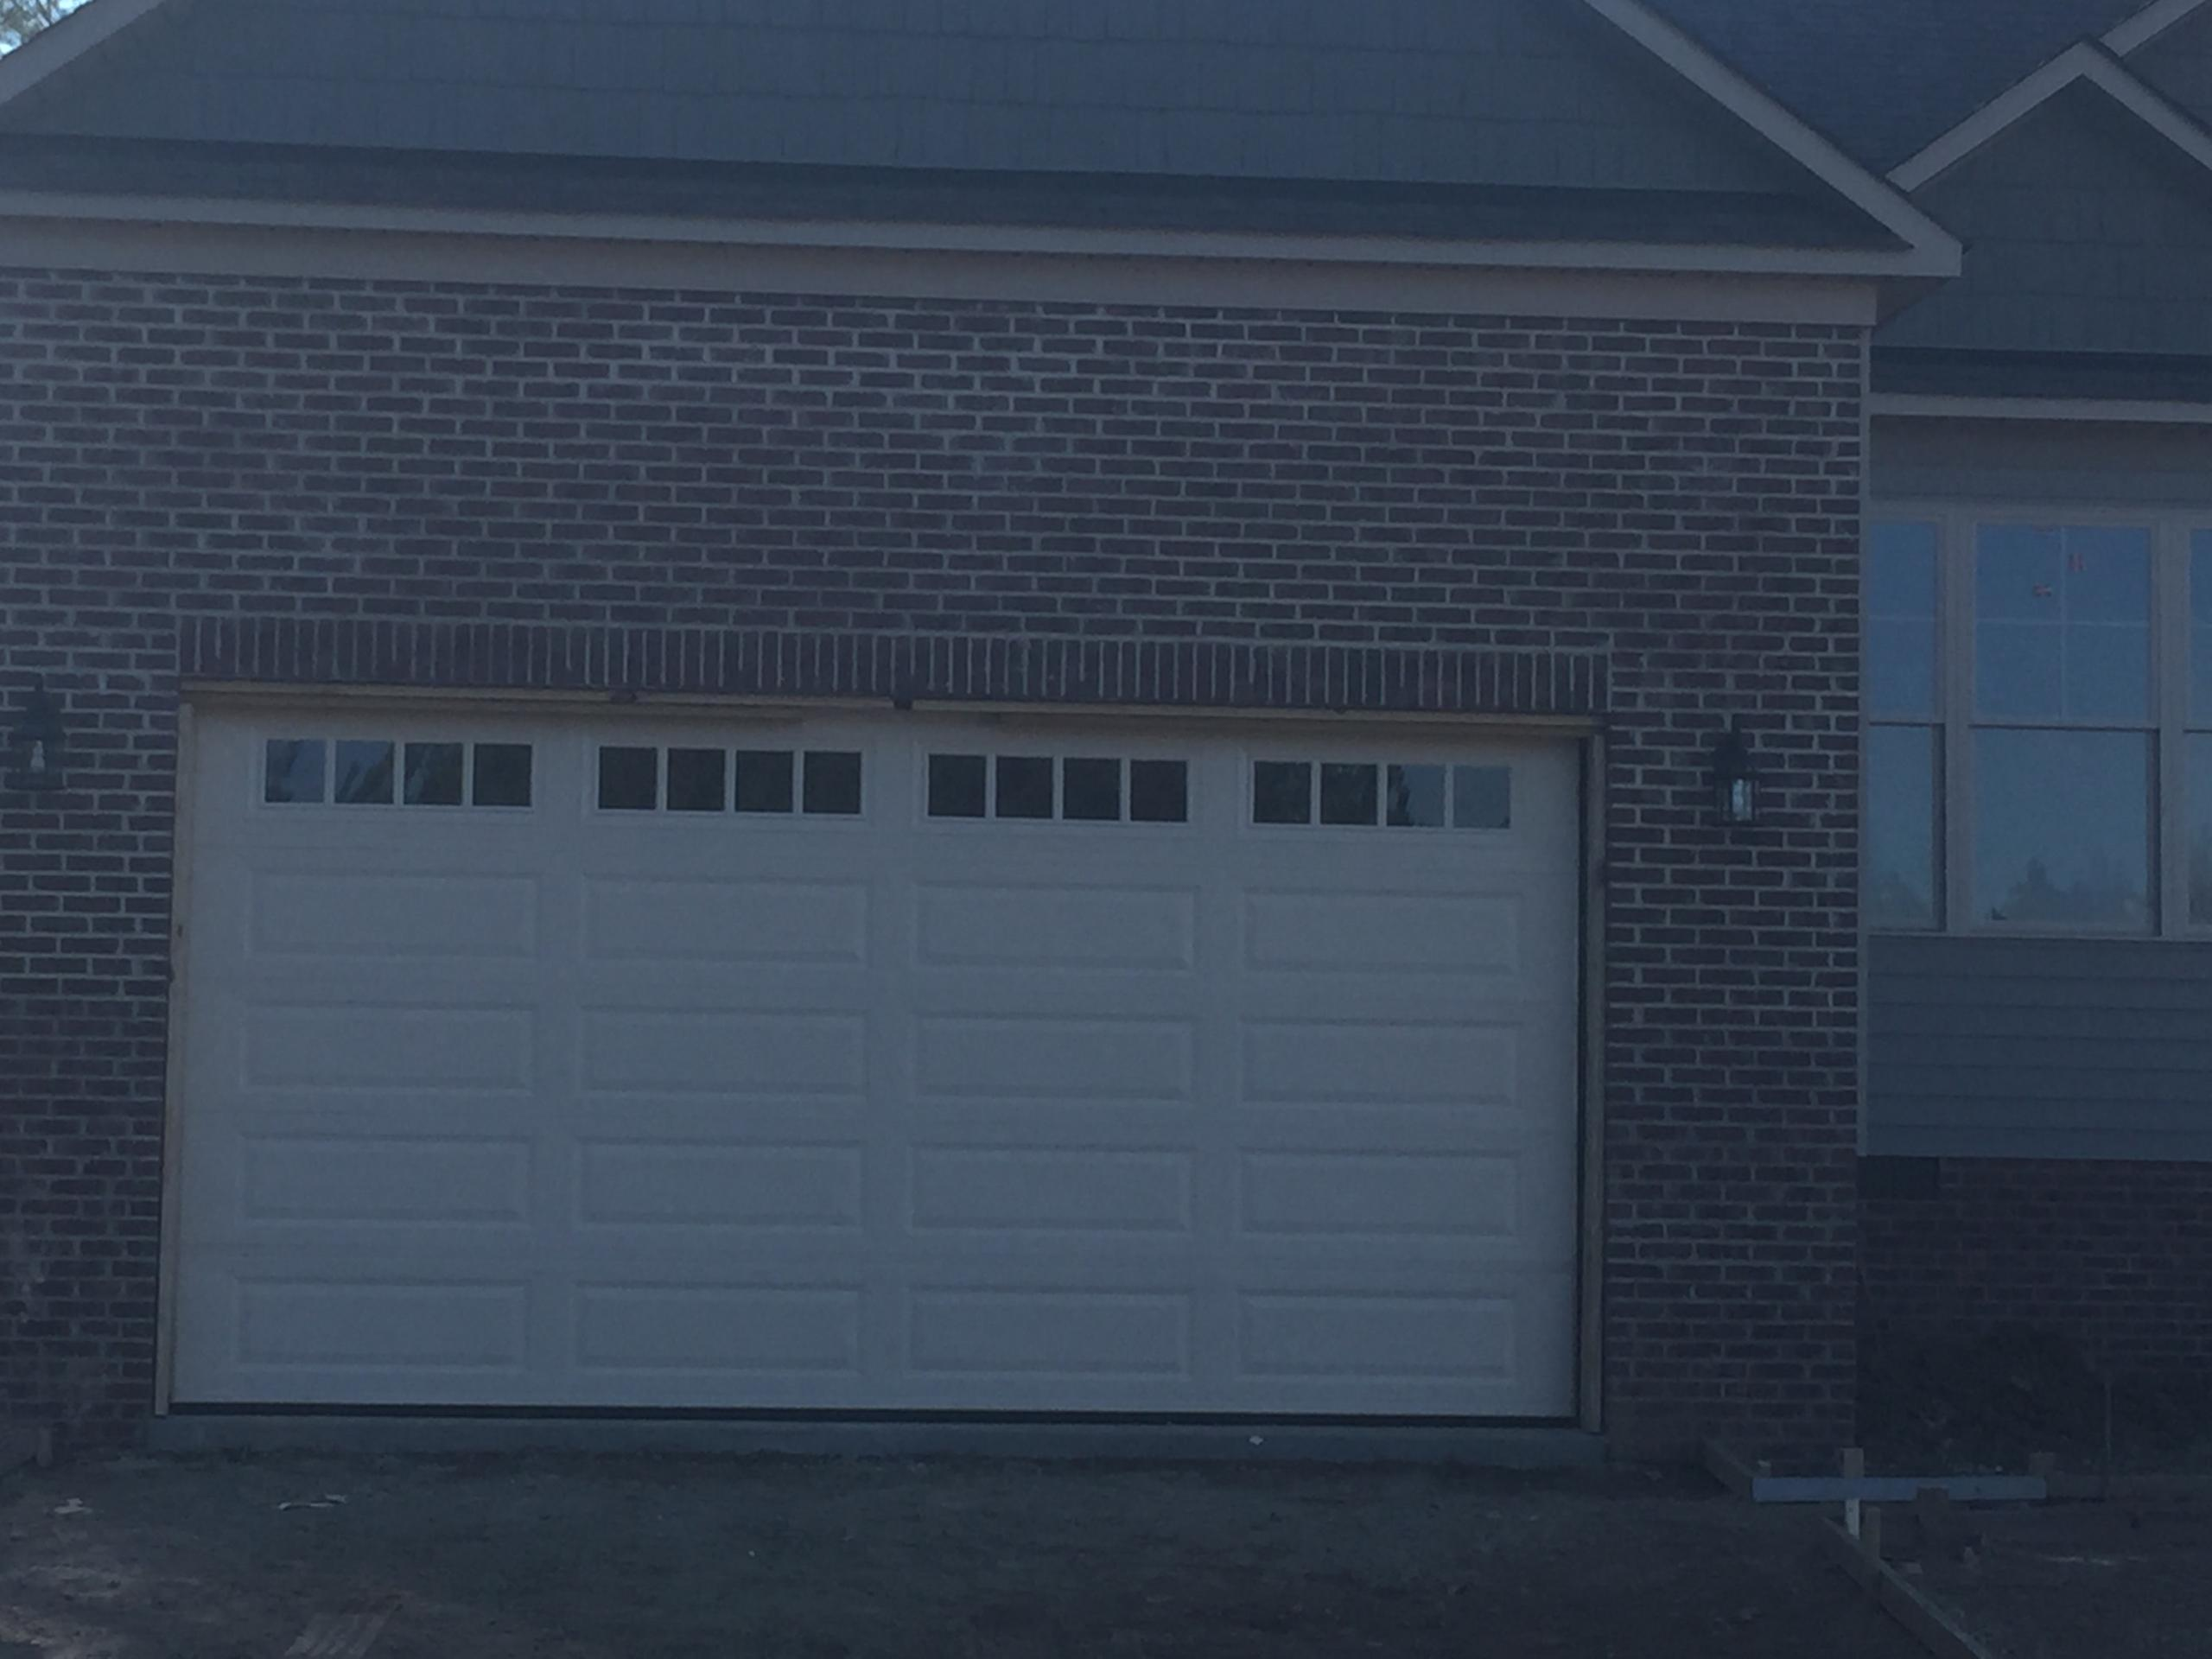 1920 #3A6F91 All American Overhead Garage Door Inc. In Wendell NC 27591  image Overhead Garage Doors Residential Reviews 37132560